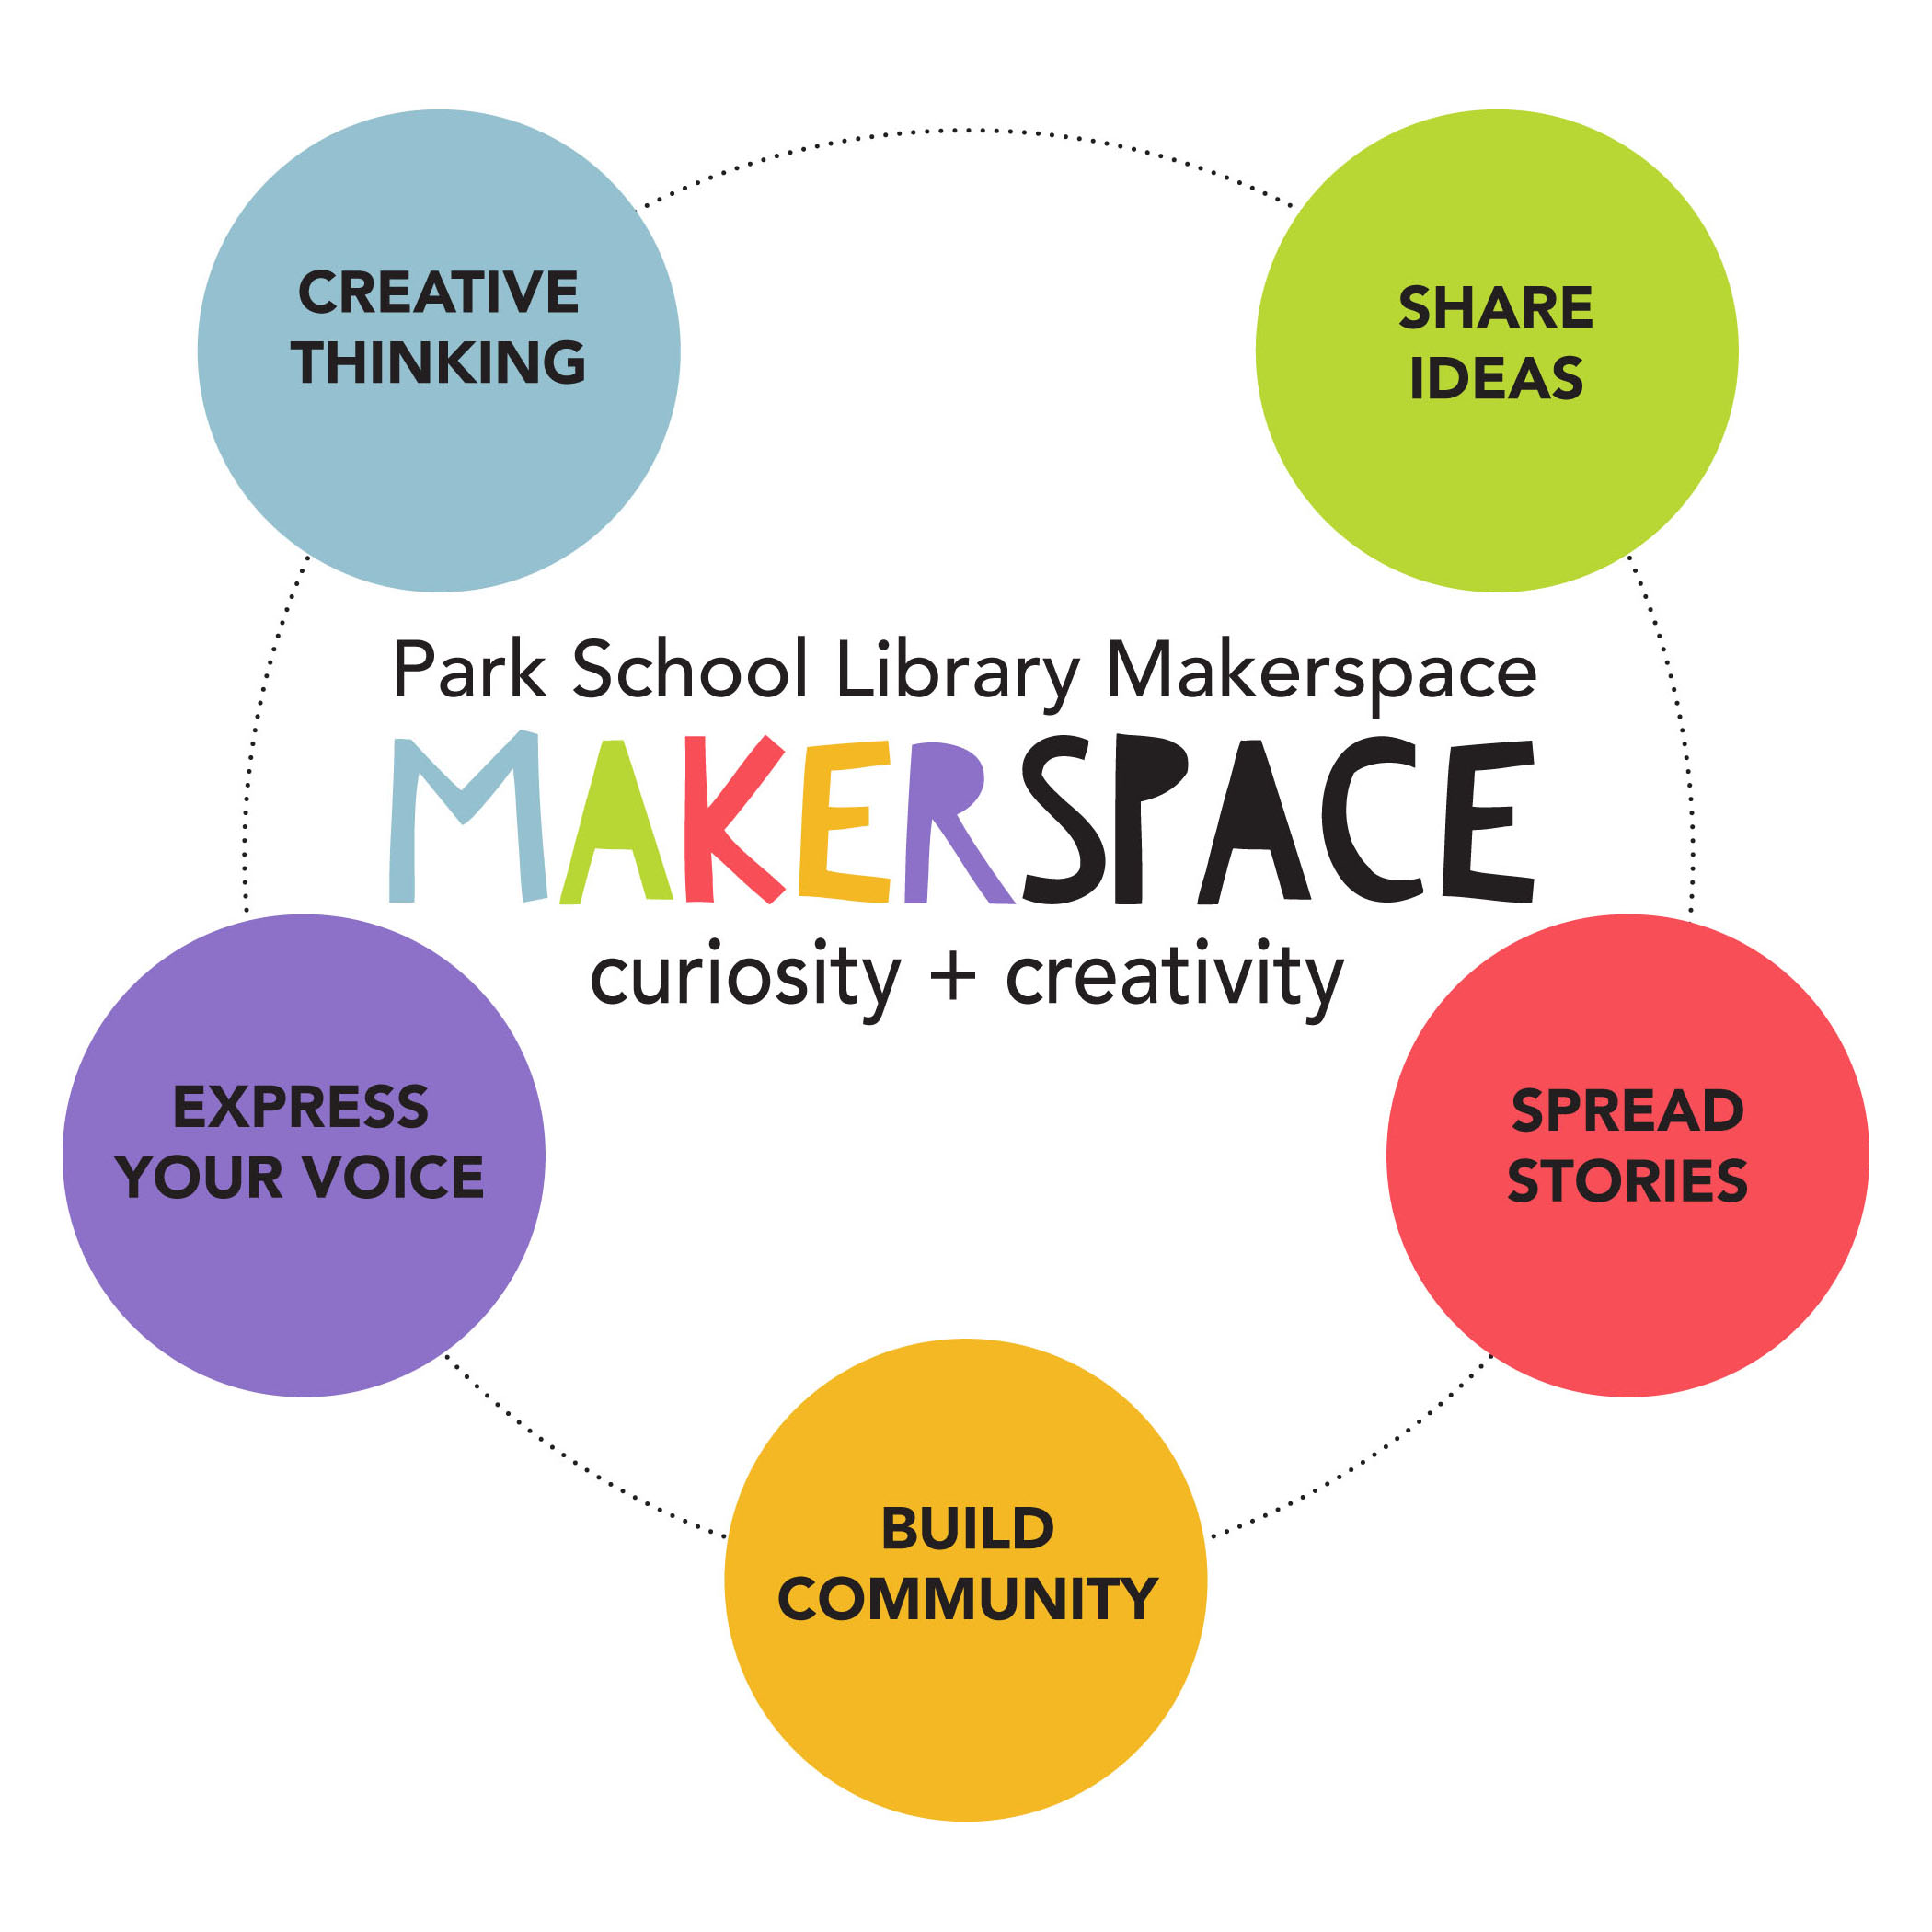 Makerspace-Article-GRAPHIC-1.jpg